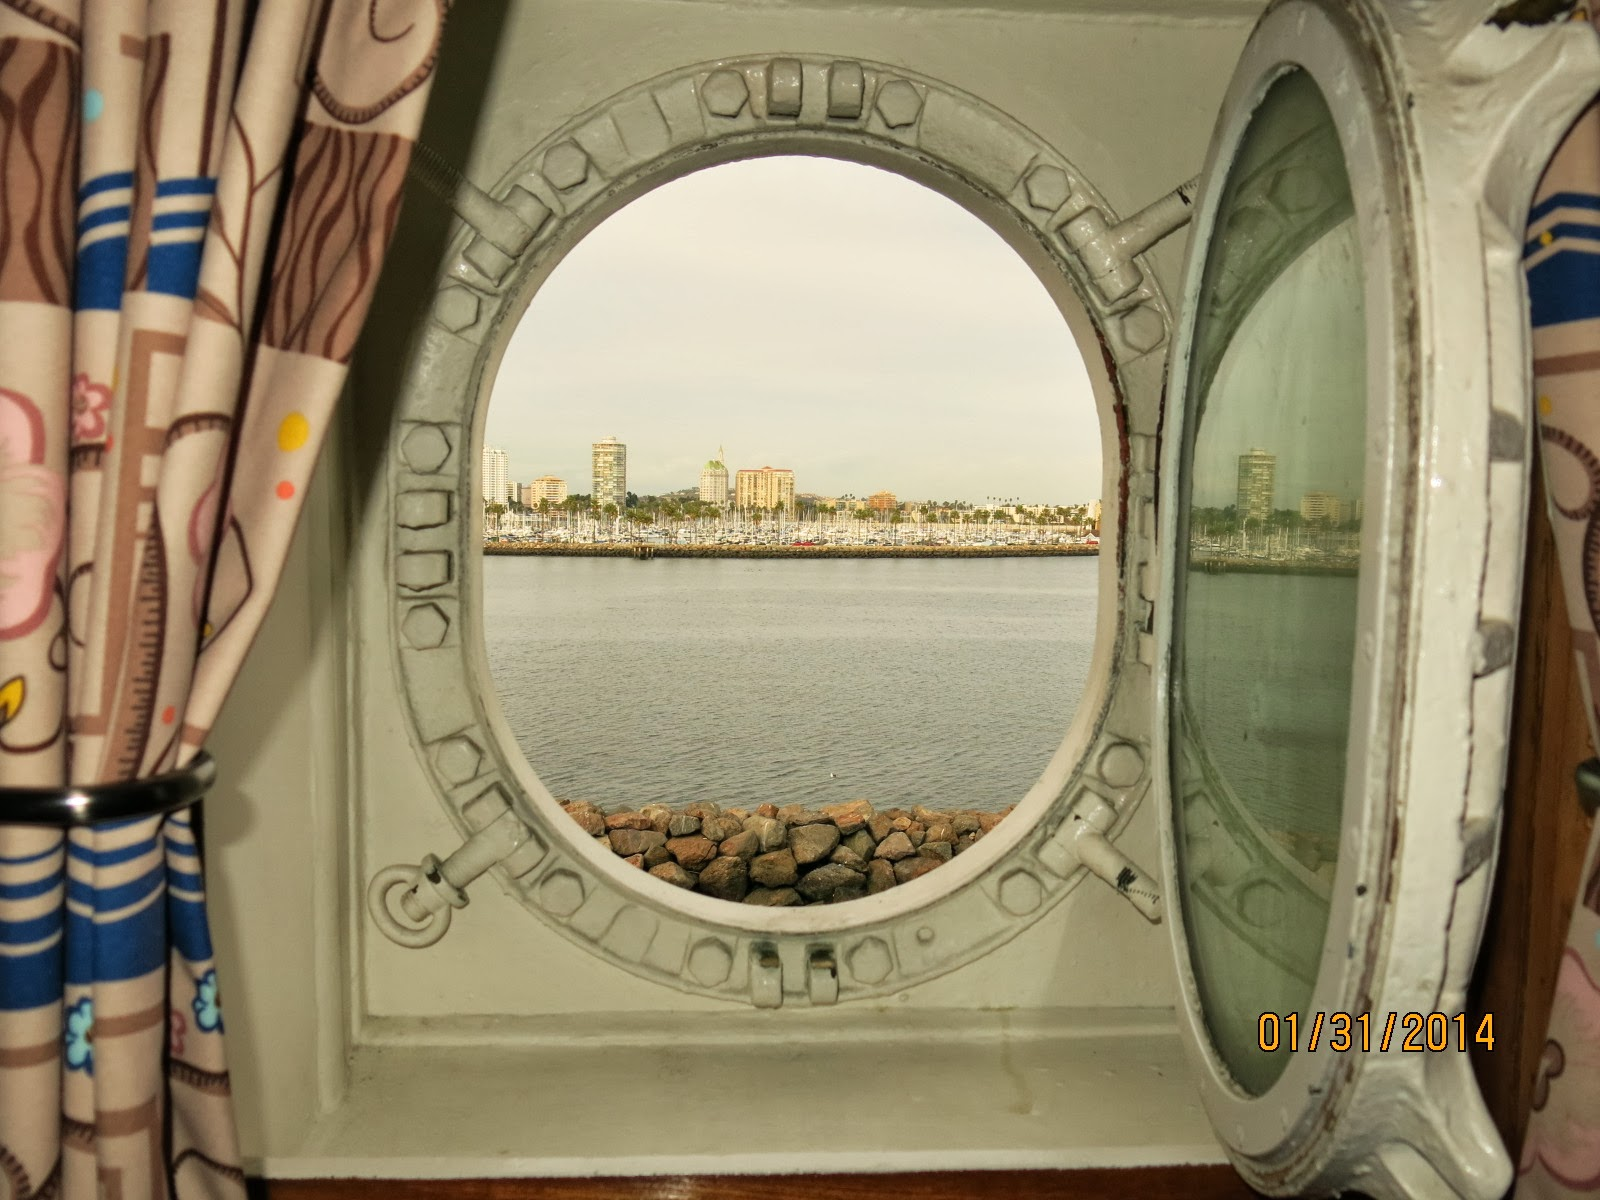 This porthole was on the sister ship to the Queen Elizabeth, the RMS Queen Mary.